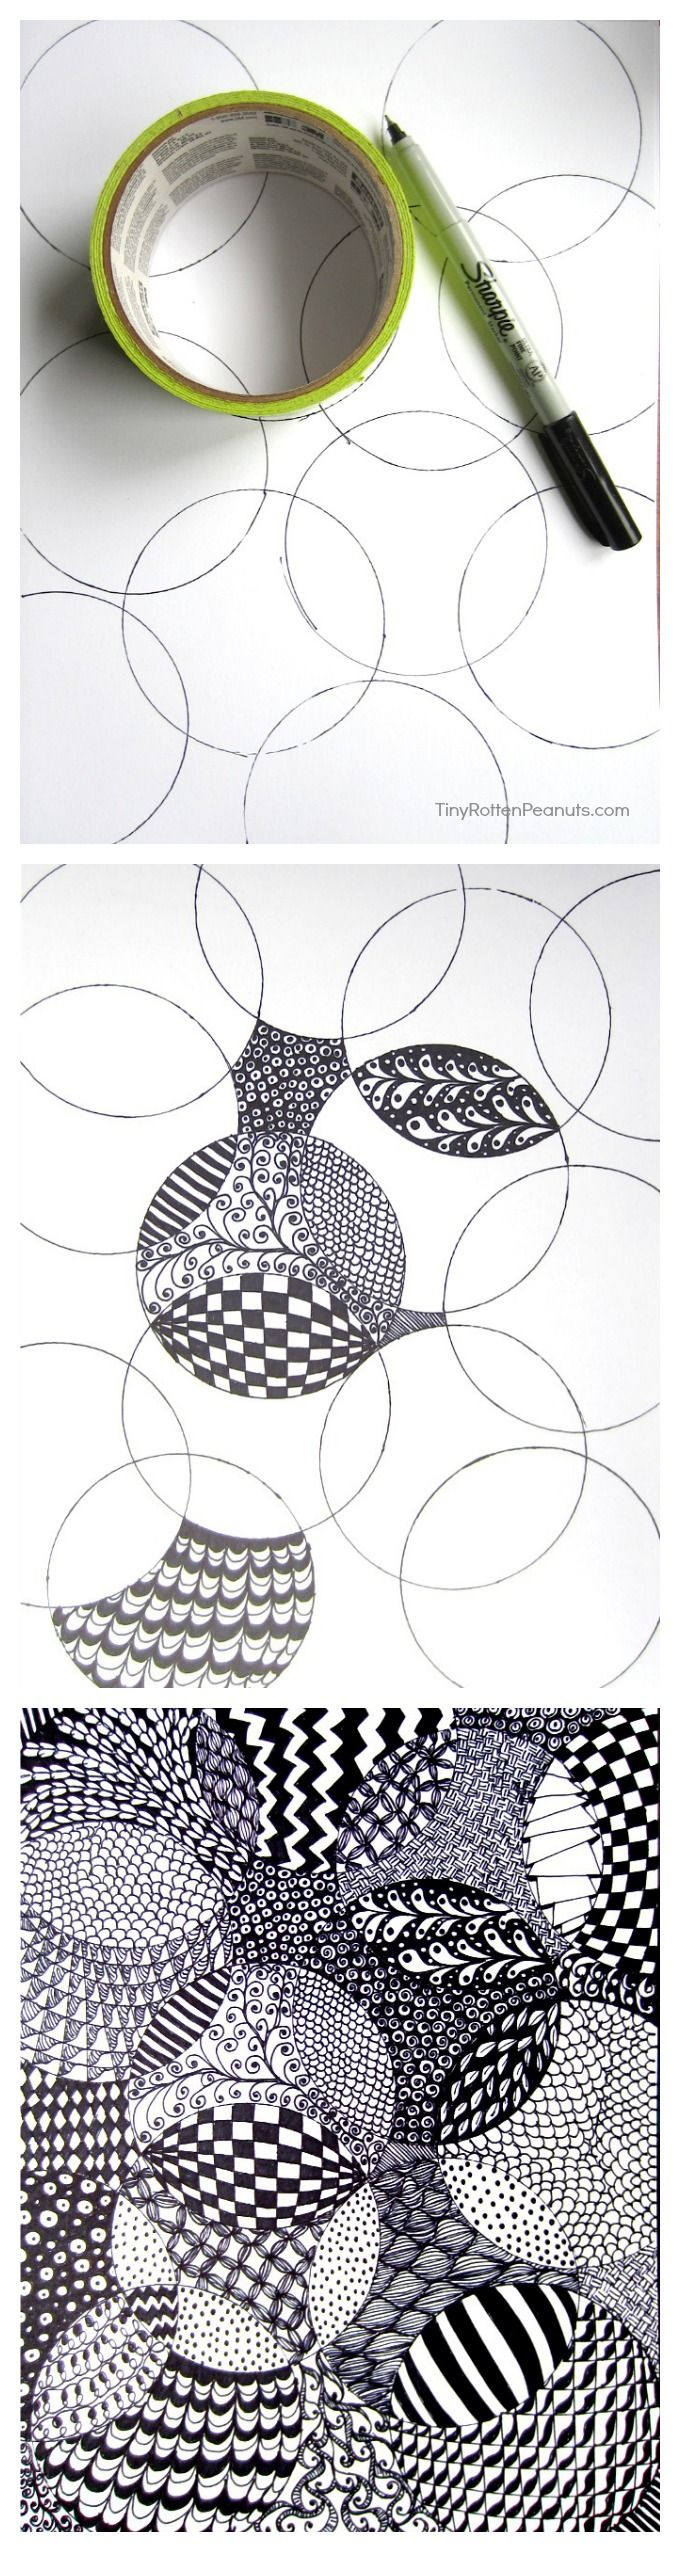 DIY: super-easy zentangle drawing project